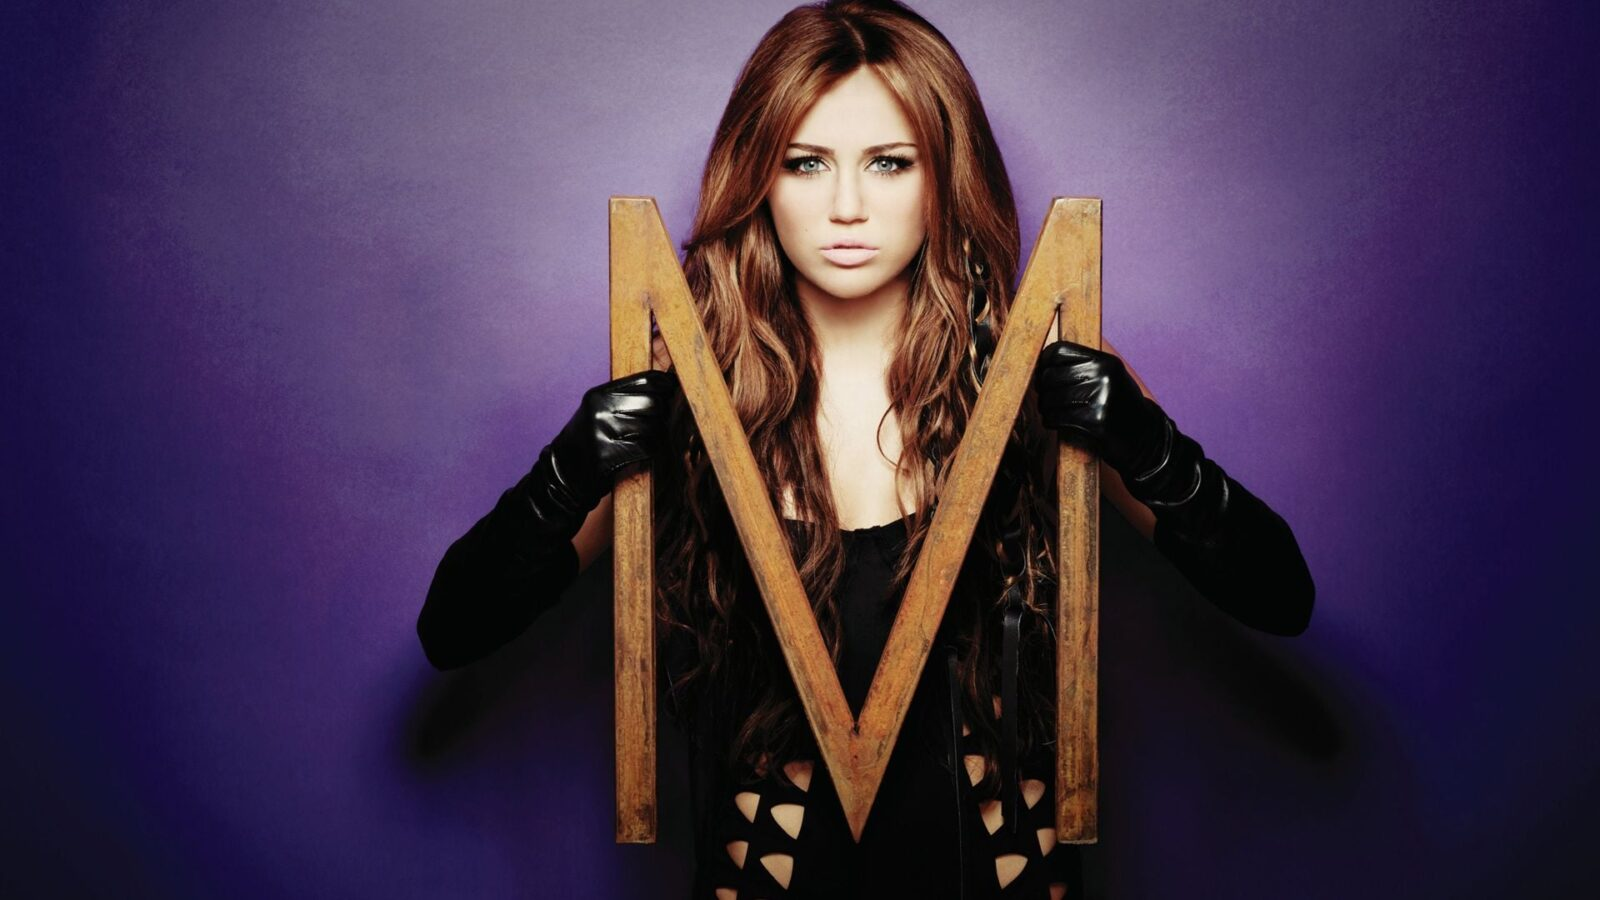 Logo Miley Cyrus the letter M HD images